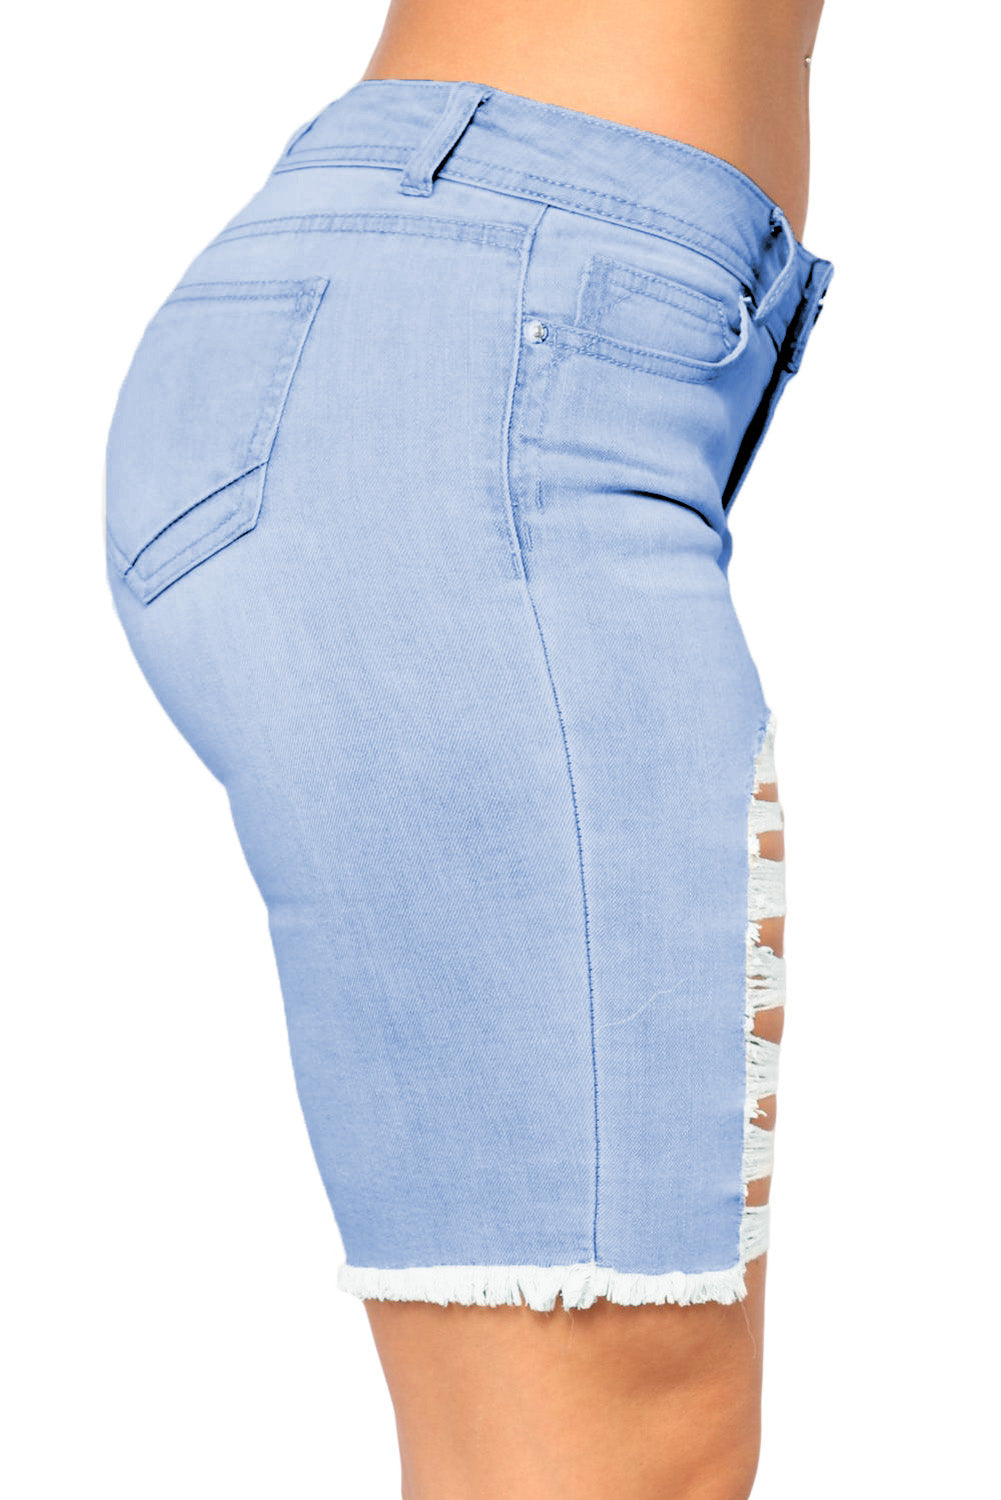 Sky Blue Making Waves Denim Bermudas